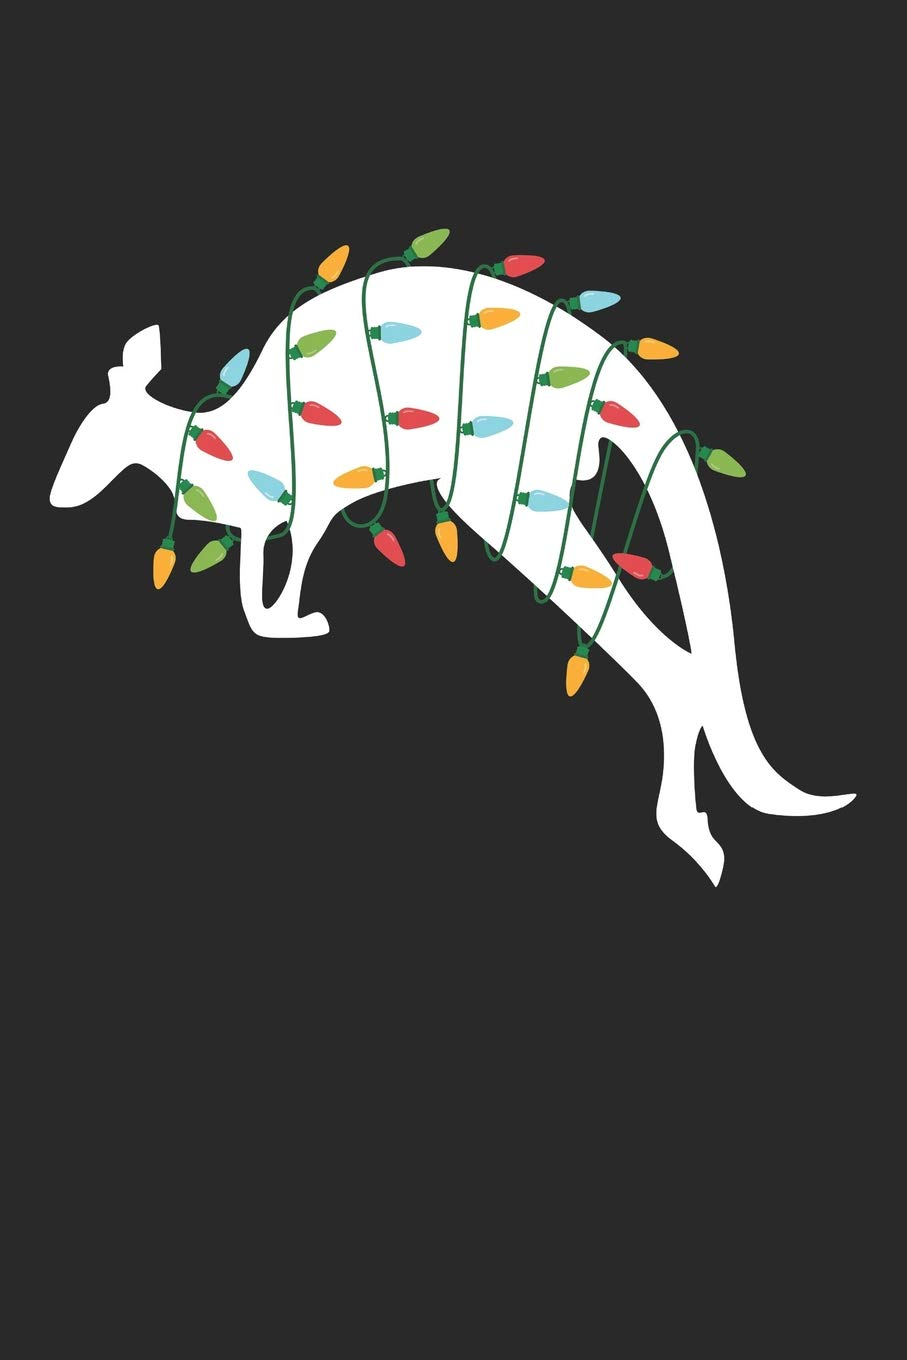 Christmas Kangaroo Lights.Christmas Notebook Kangaroo With Christmas Lights